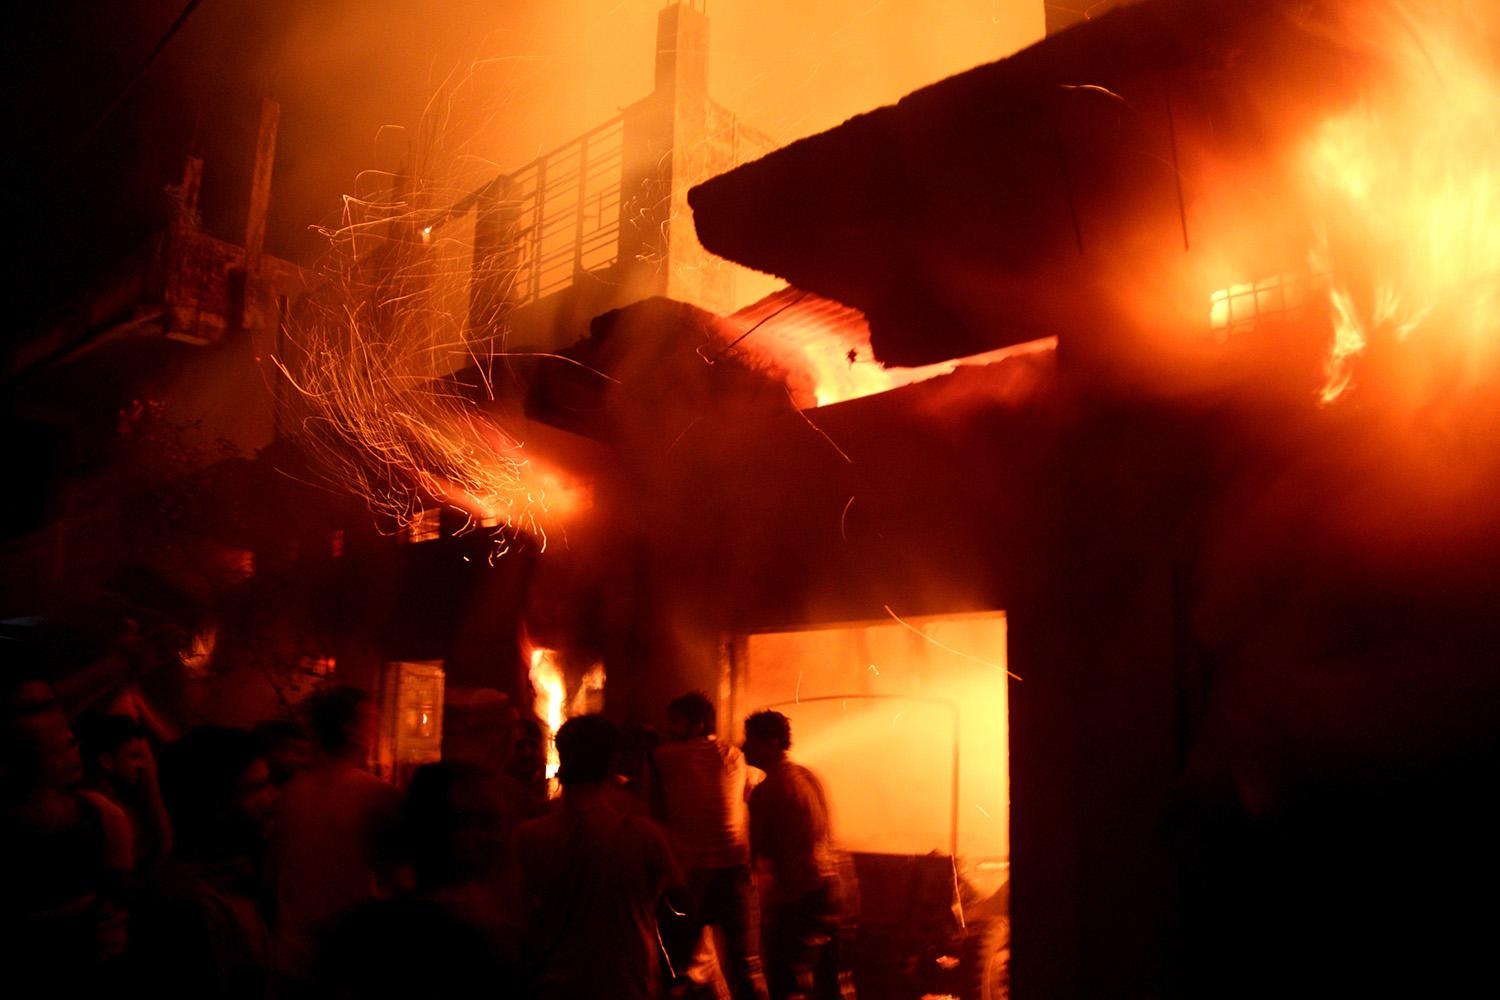 <p>Indian firefighters and local residents try to extinguish a fire at a warehouse in Bhopal, India, April 7, 2017. According to police and media reports, around 50 fire engines fought for close to eight hours to extinguish the blaze. No casualties have been reported in the incident so far. (Photo: Sanjeev Gupta/EPA) </p>